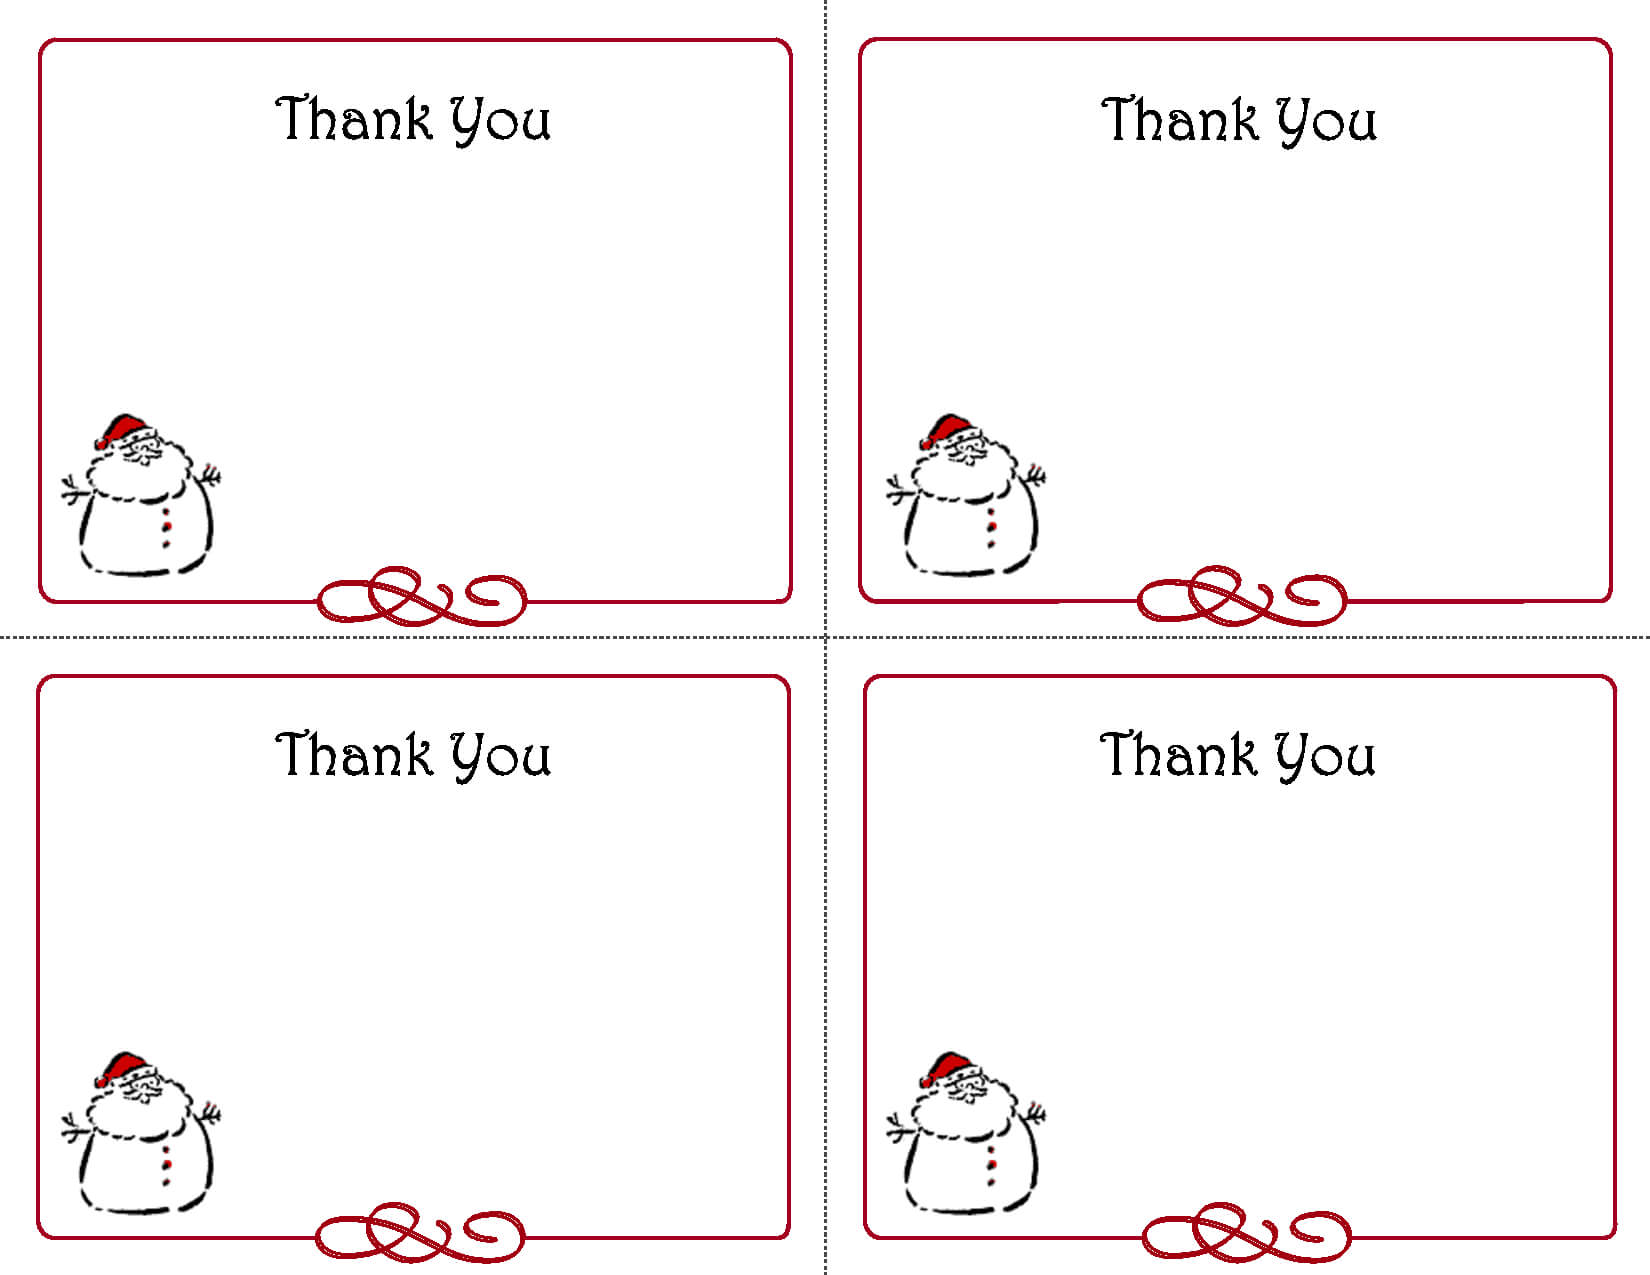 Free Thank You Cards Printable | Free Printable Holiday Gift Throughout Christmas Note Card Templates